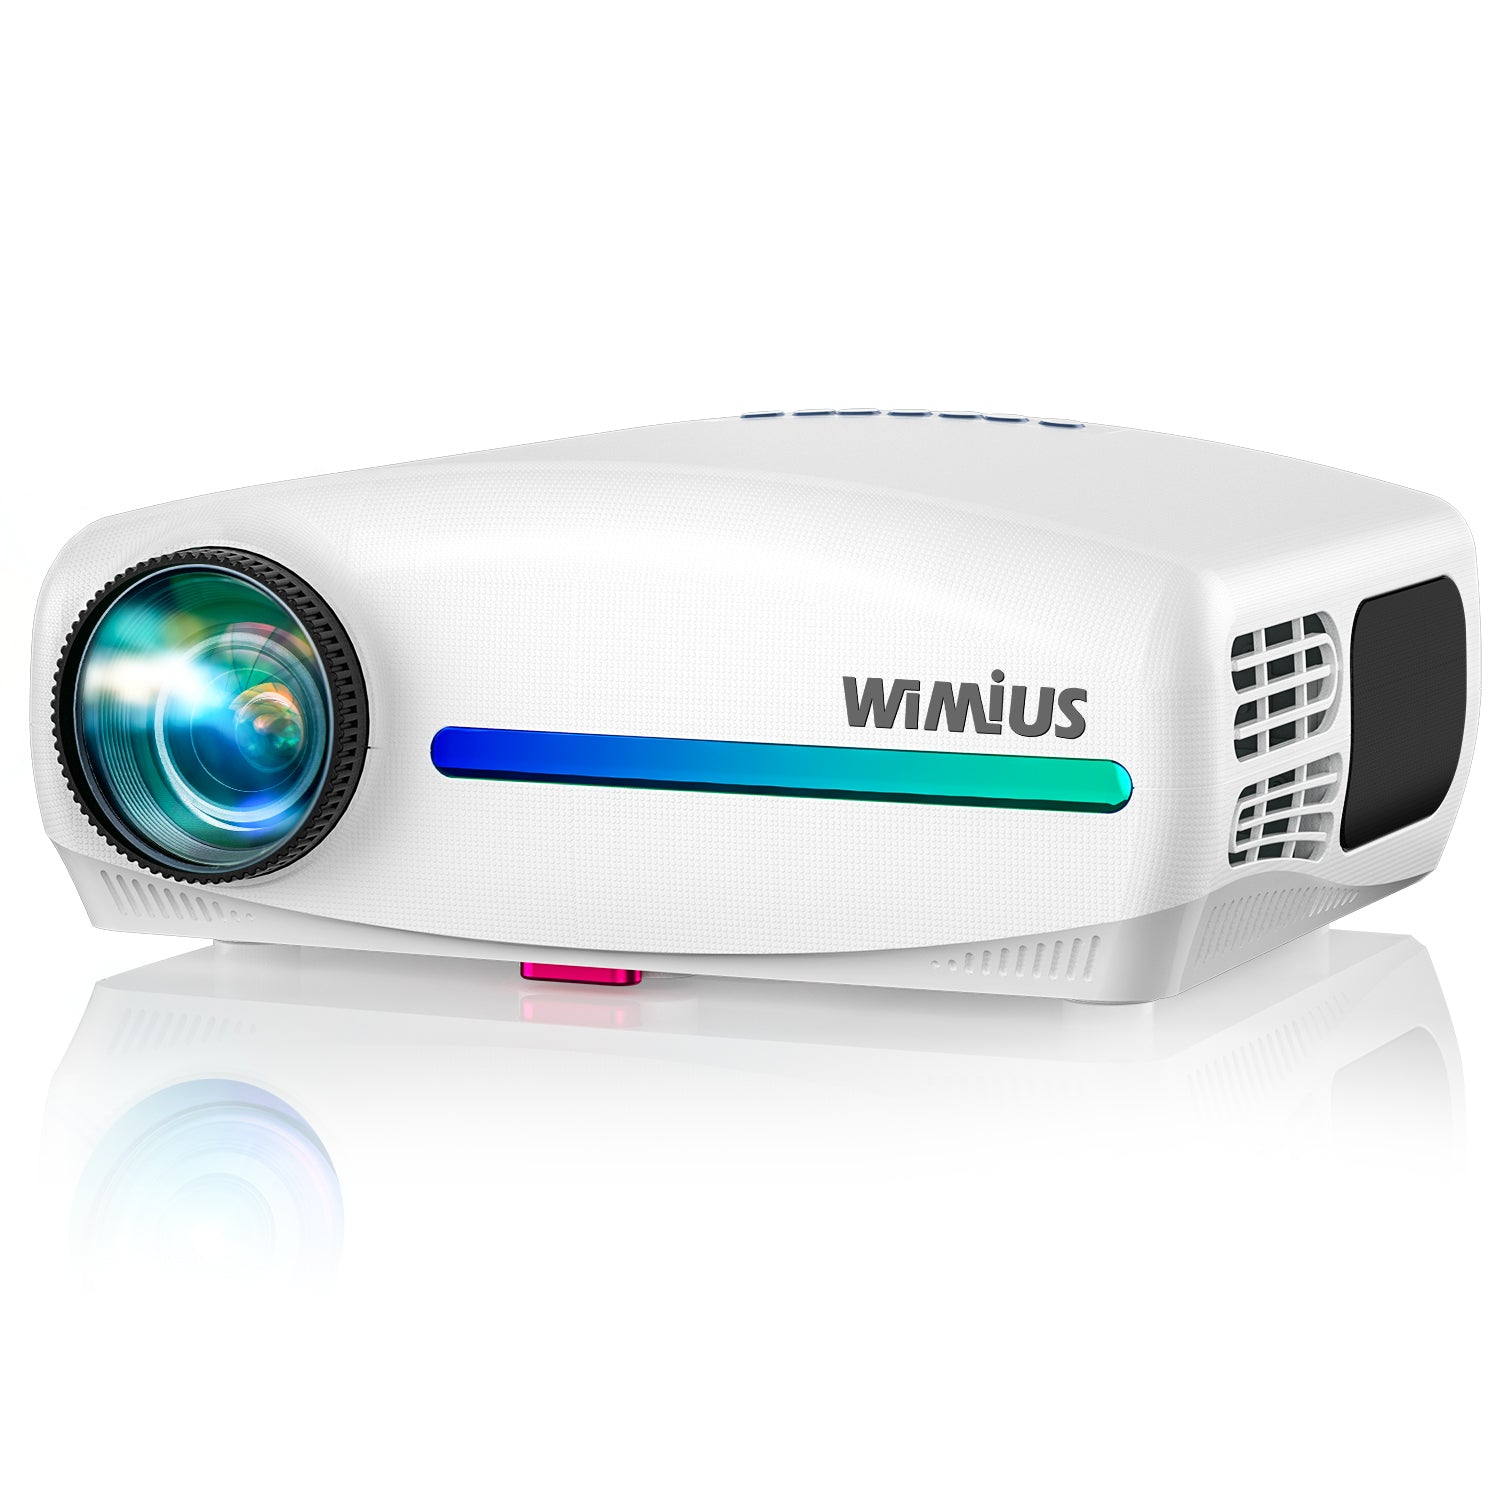 WiMiUS Video Projector - S1 - Wimius-store